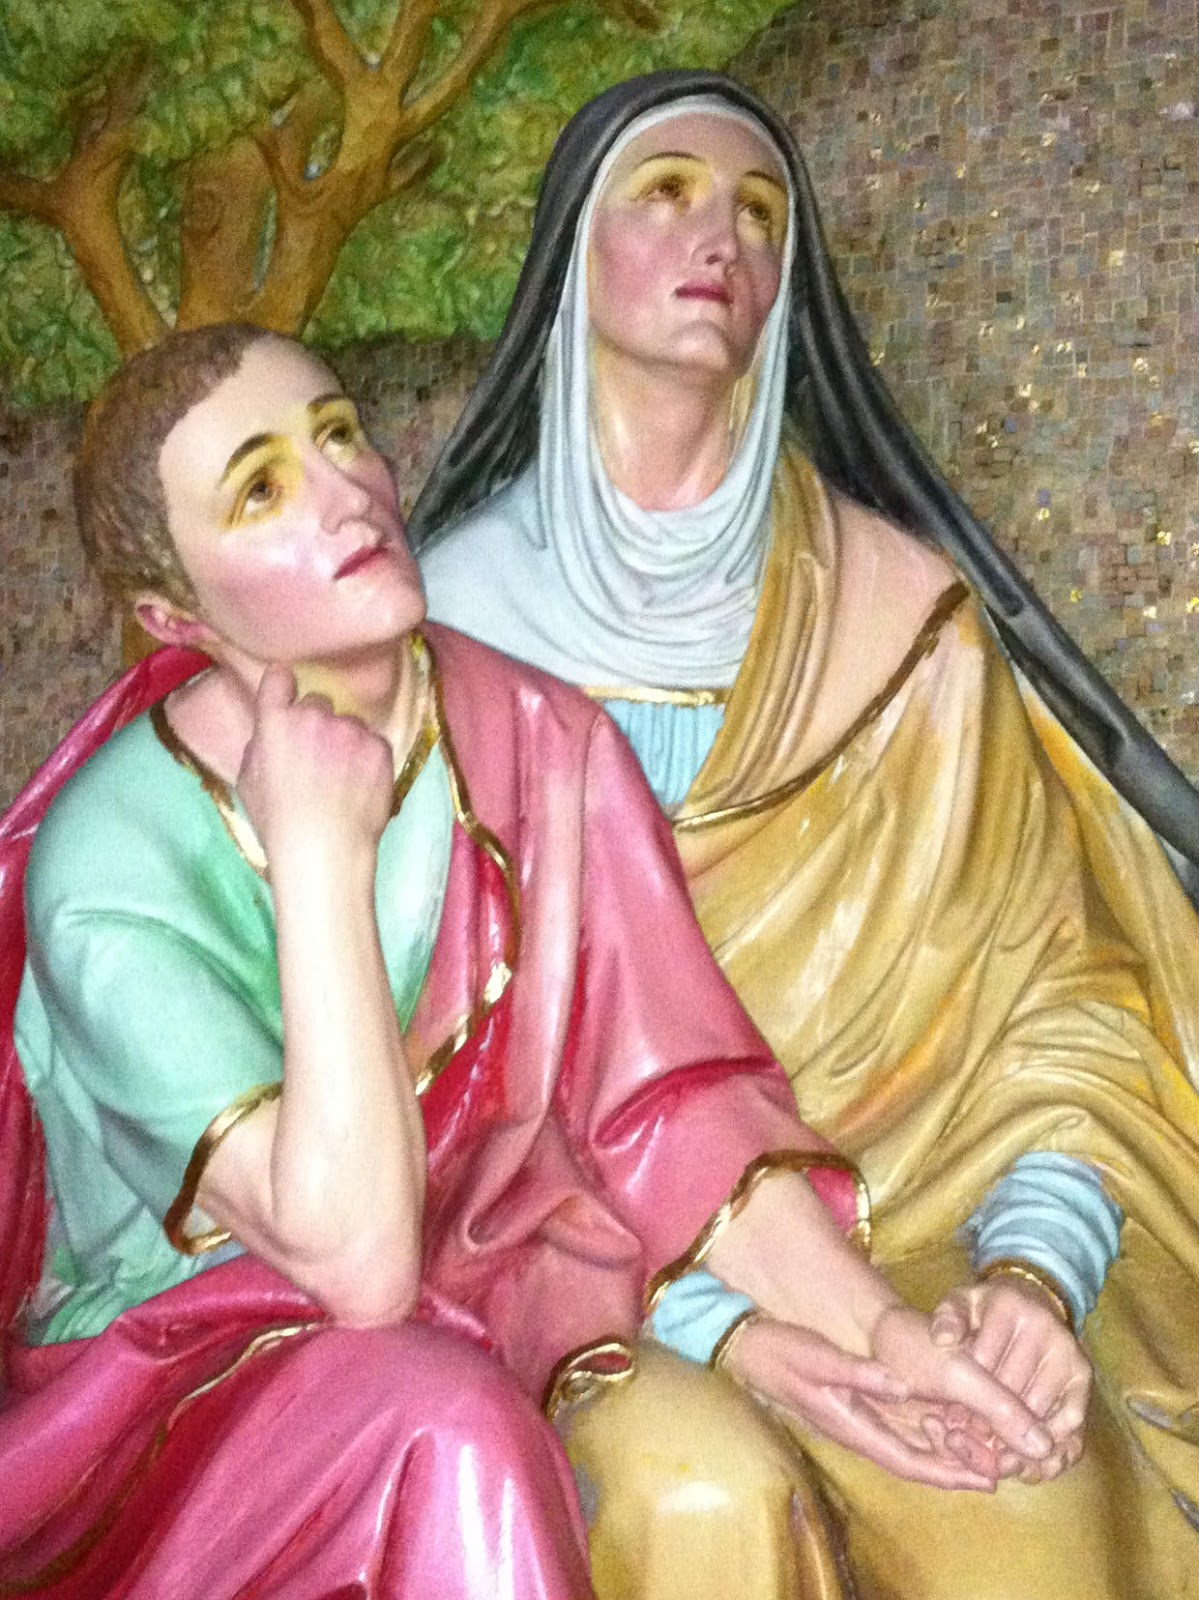 augustine s tribute to his mother monica Augustine was still struggling with his flesh and was getting more and more despondent with his life and the life of direction he had had a mistress he had a son with this mistress, but he did not want to get married.